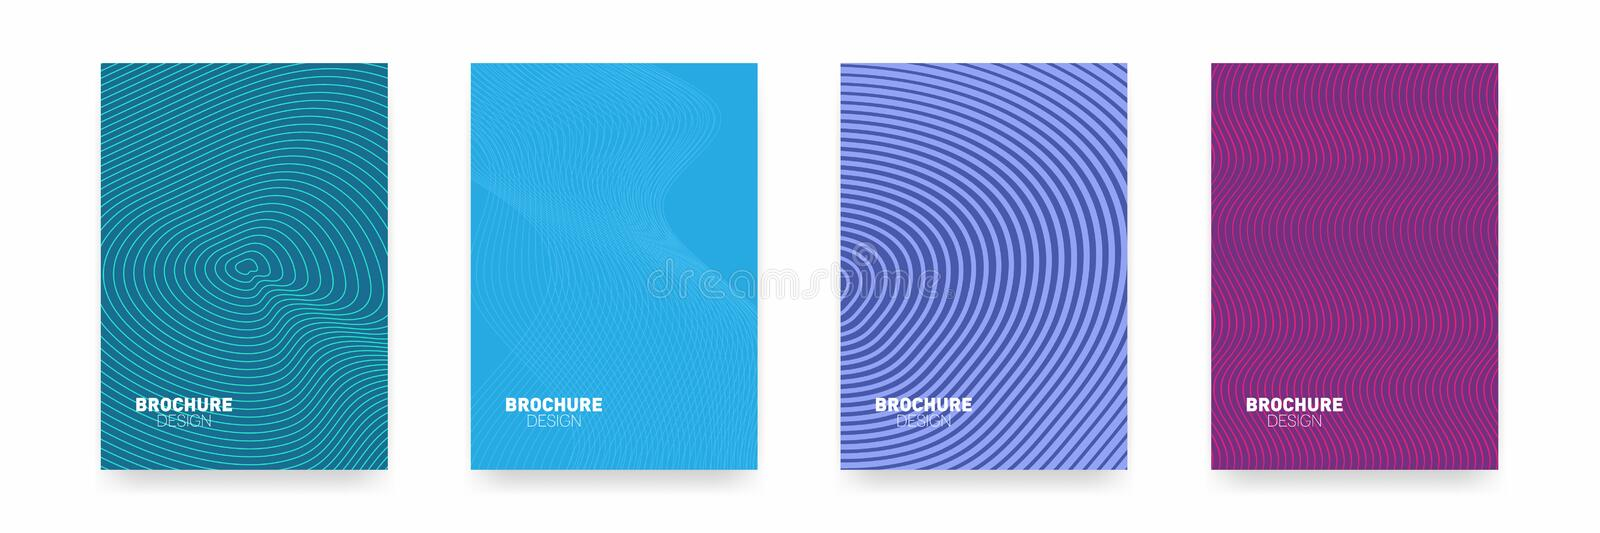 Business brochure cover design. Abstract geometric template. Set of minimal covers design vector illustration